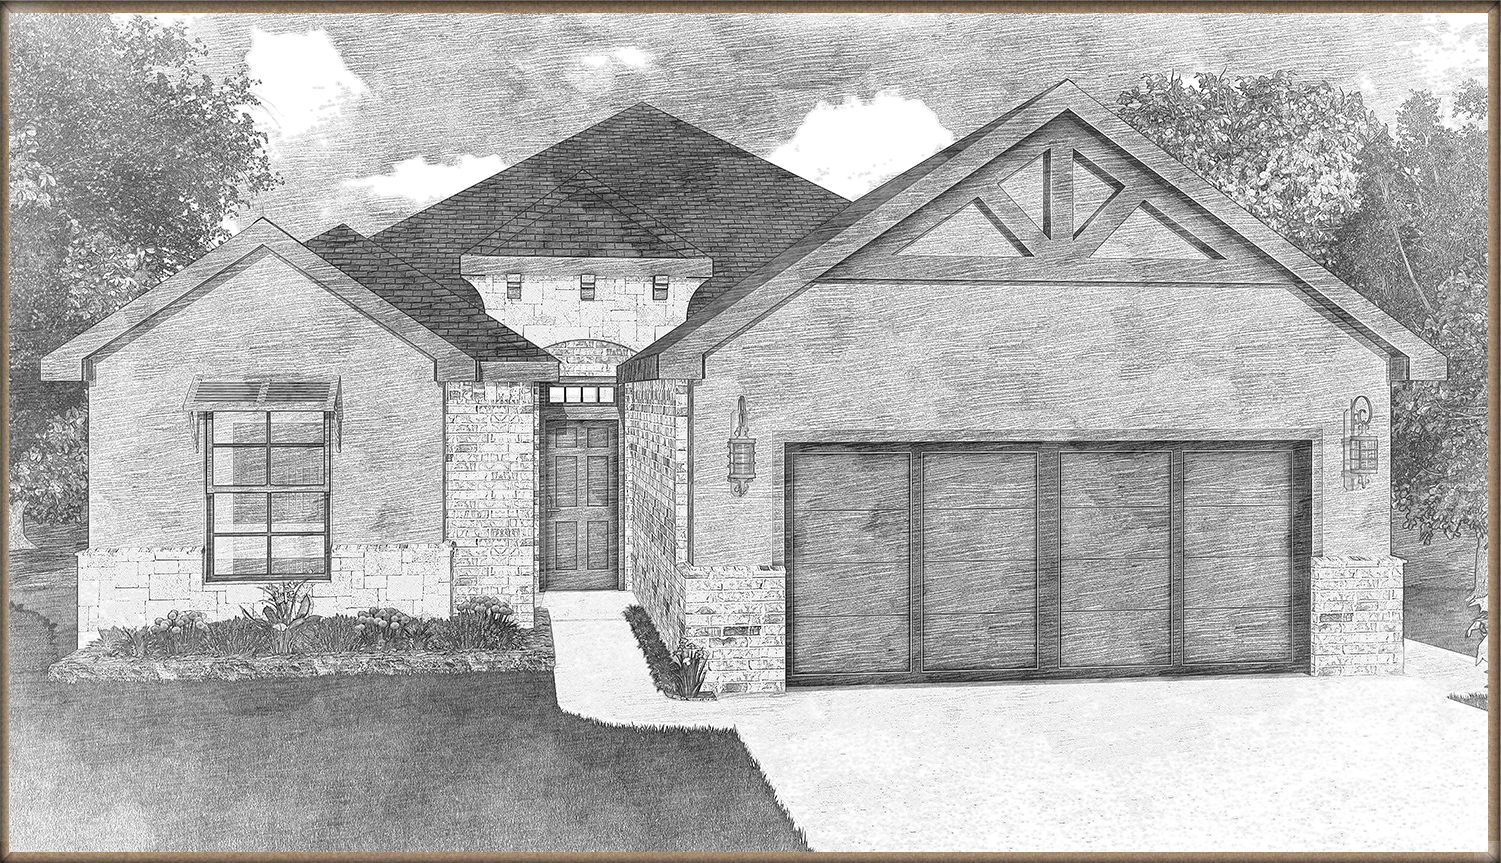 821 N.W. 192TH TERRACE LOT 2 BLOCK 9 - SALES.jpg